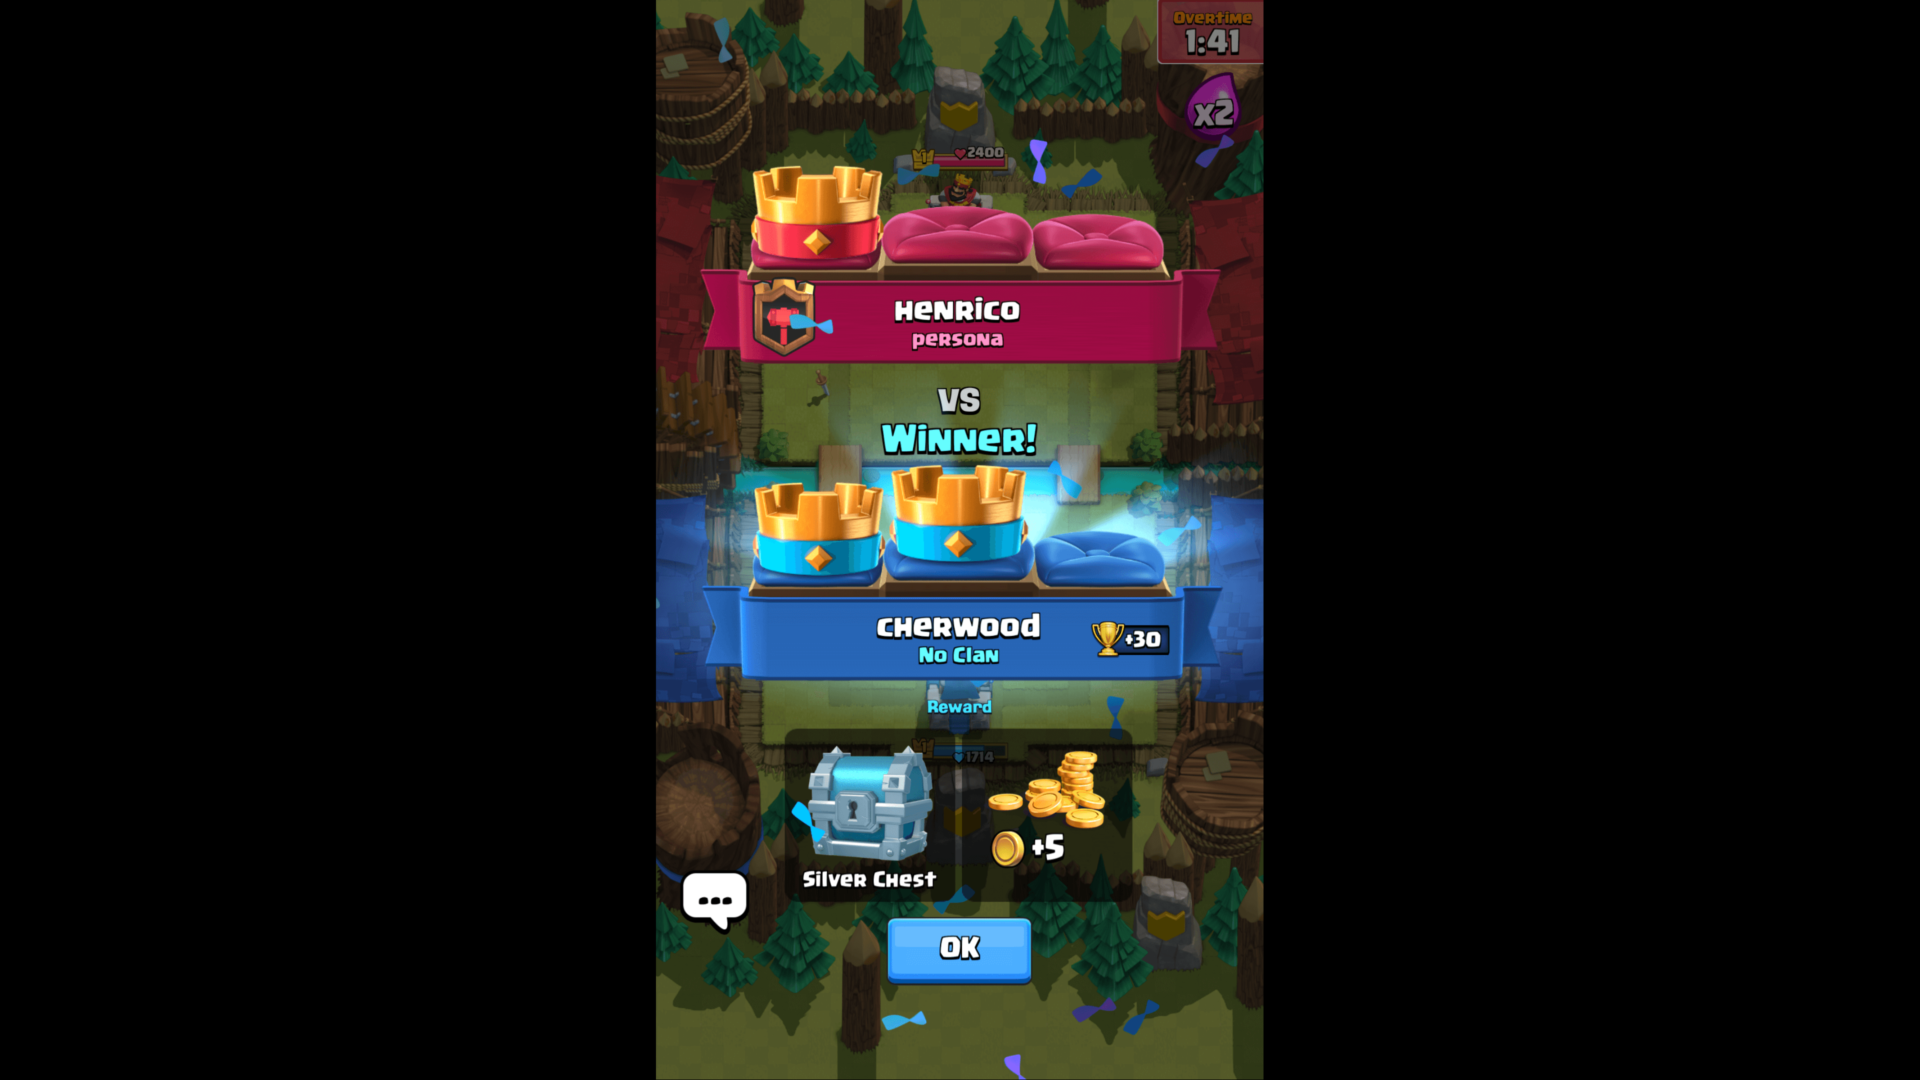 Game summary screenshot of Clash Royale video game interface.